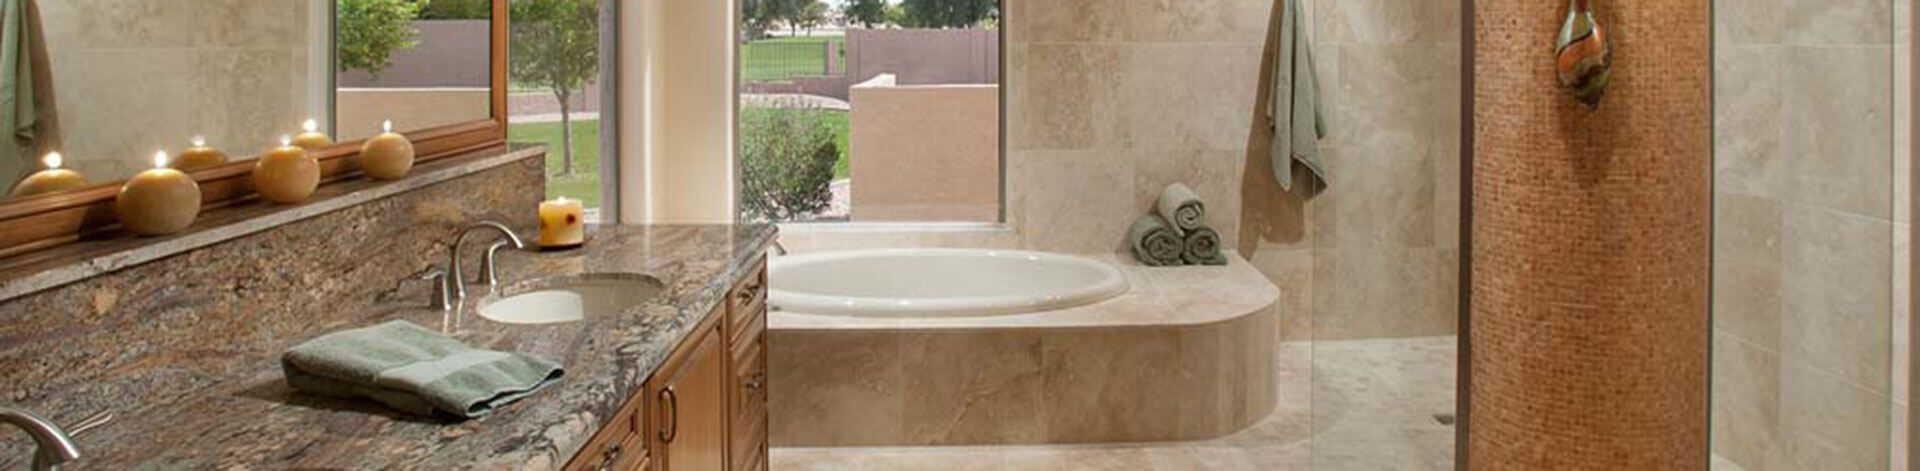 Phoenix Bathroom Remodeling Bathroom Remodeling In Phoenix & Scottsdale  Republic West Remodeling